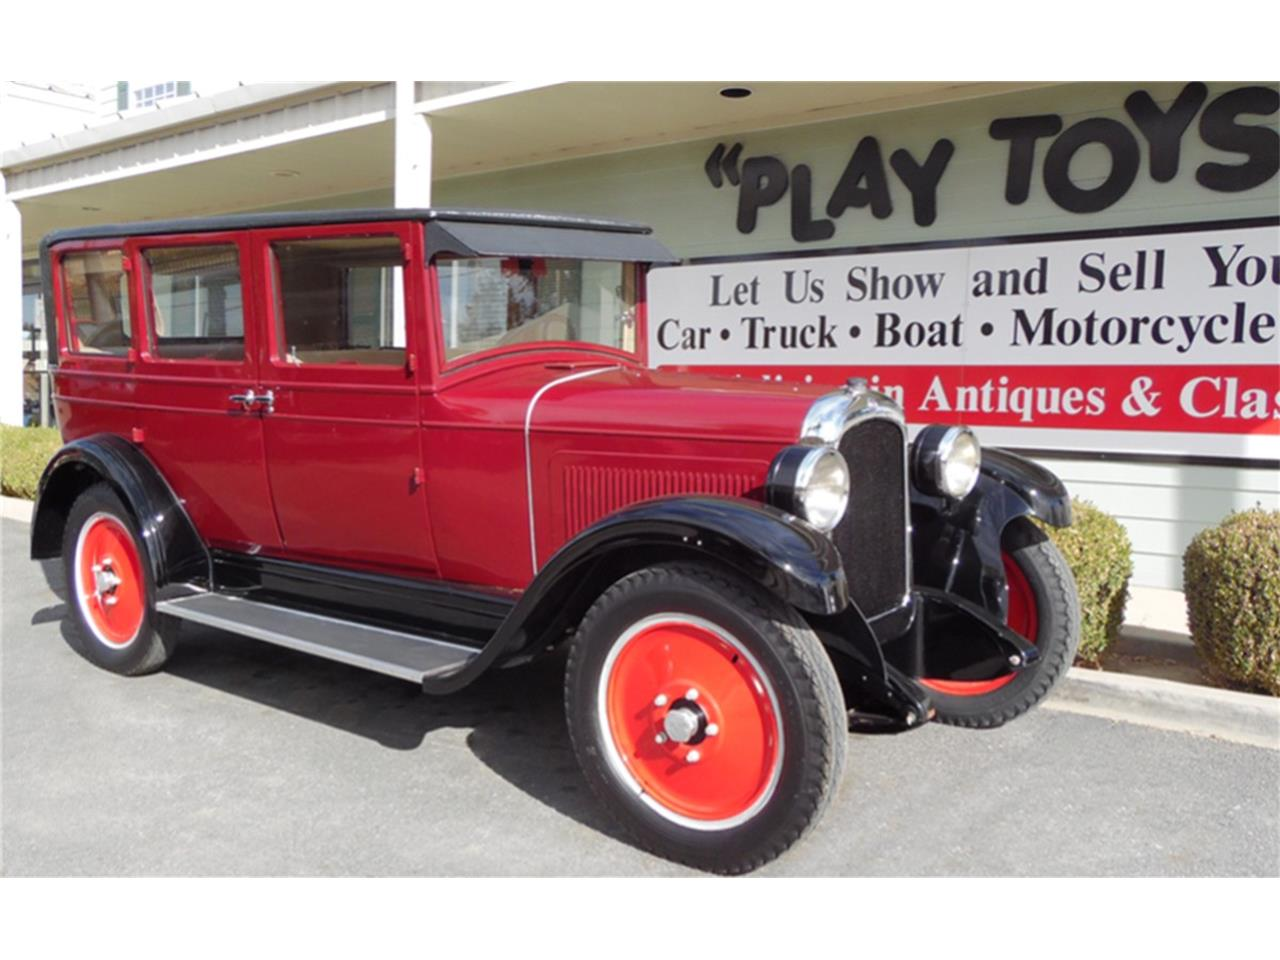 Large Picture of 1925 Willys Sedan located in Redlands California - $9,995.00 - MFMK